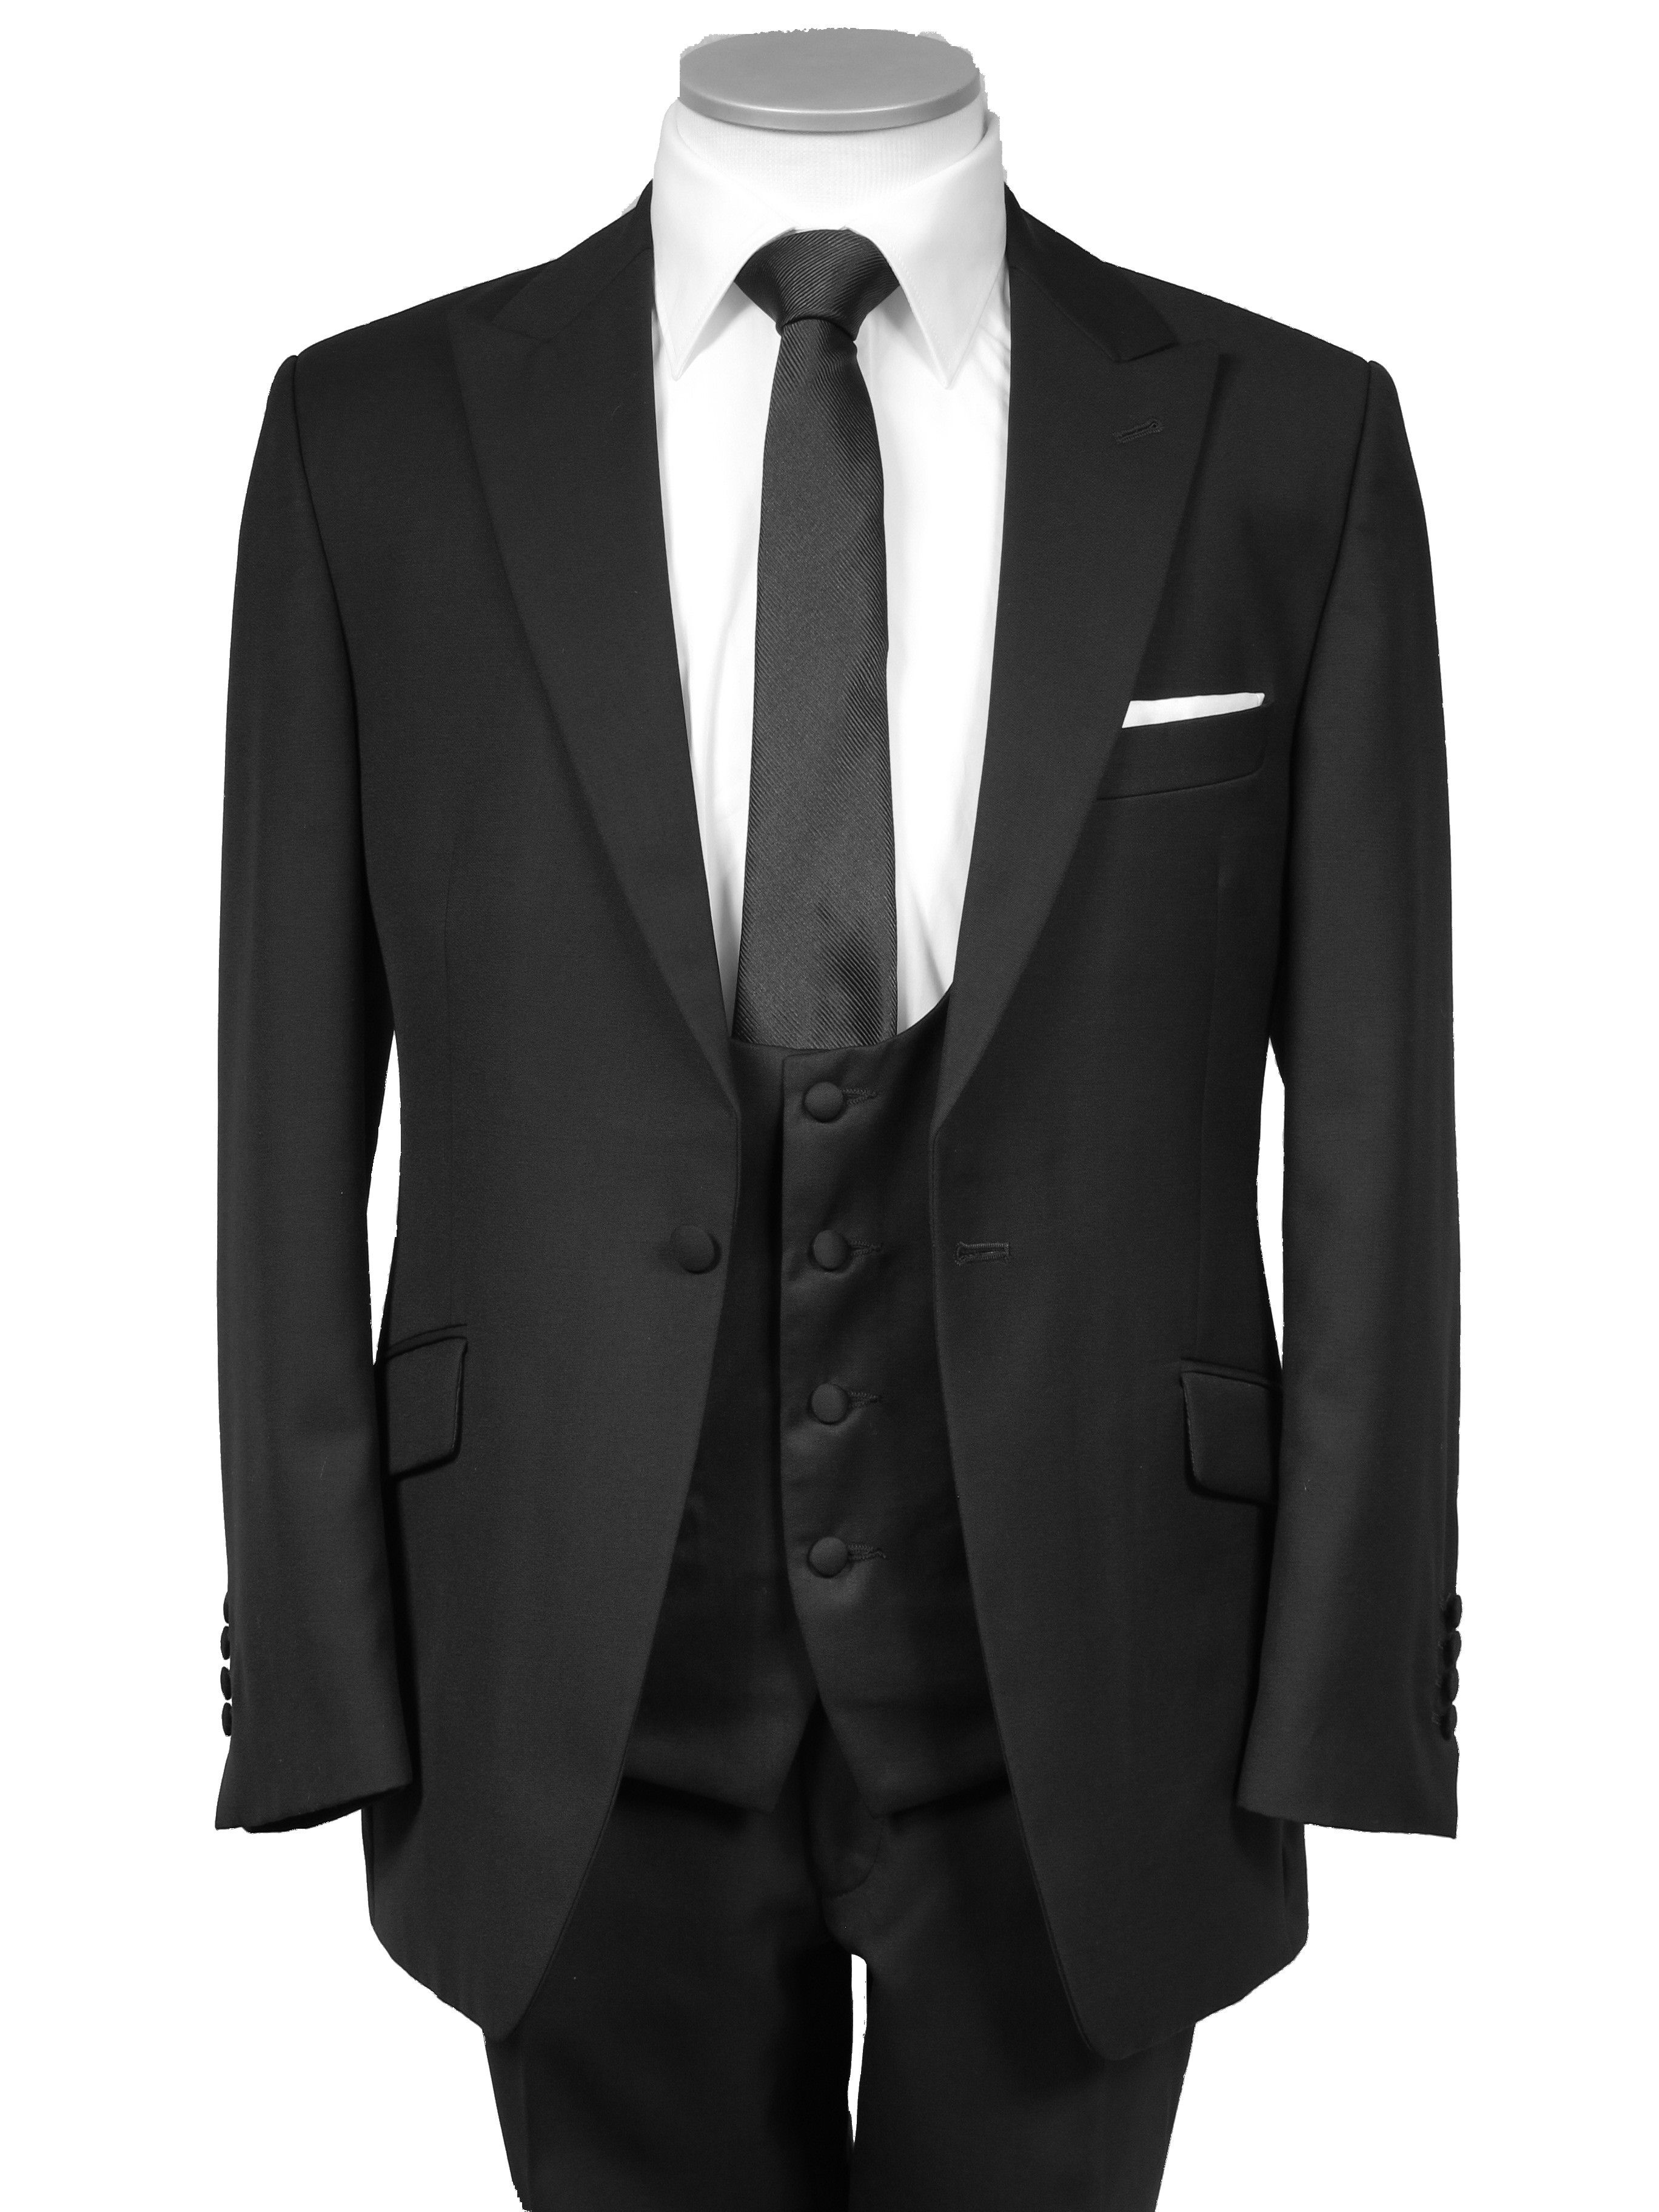 Black suit in light weight pure super 120 wool slim fit lounge suit Choose  from low